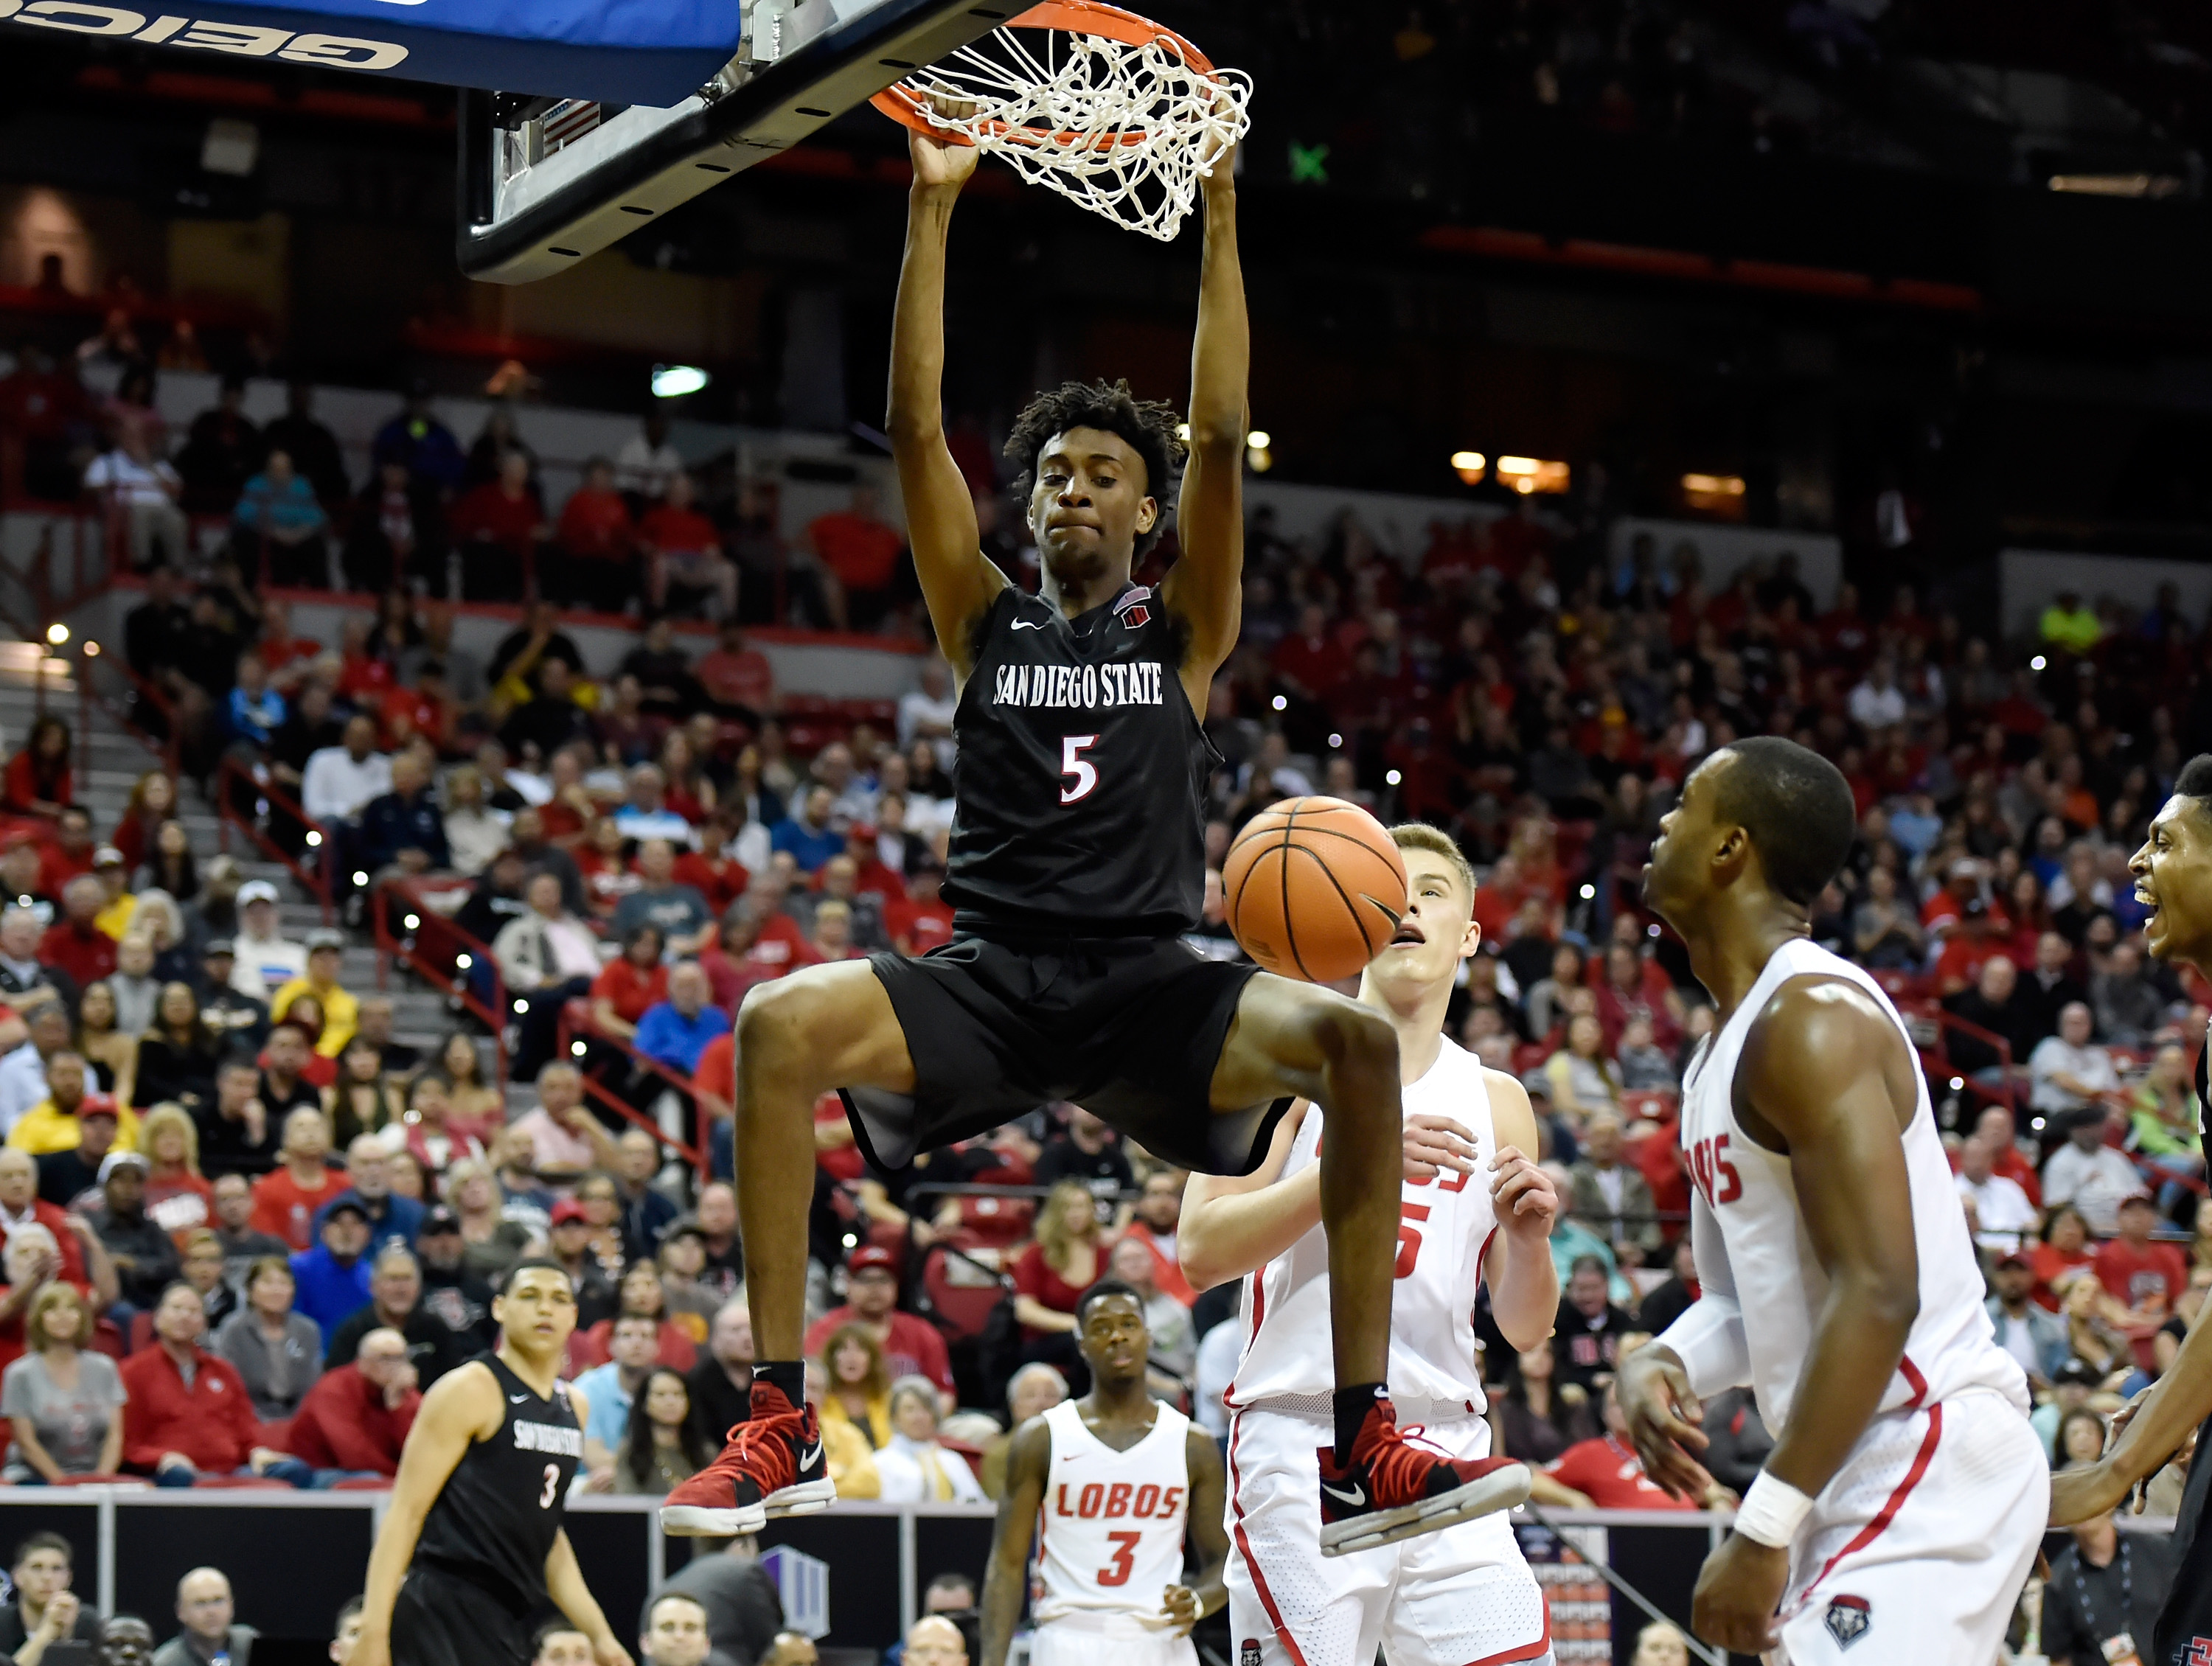 LAS VEGAS, NV - MARCH 10: Jalen McDaniels #5 of the San Diego State Aztecs ducks the ball against the New Mexico Lobos during the championship game of the Mountain West Conference basketball tournament at the Thomas & Mack Center on March 10, 2018 in Las Vegas, Nevada. (Photo by David Becker/Getty Images)